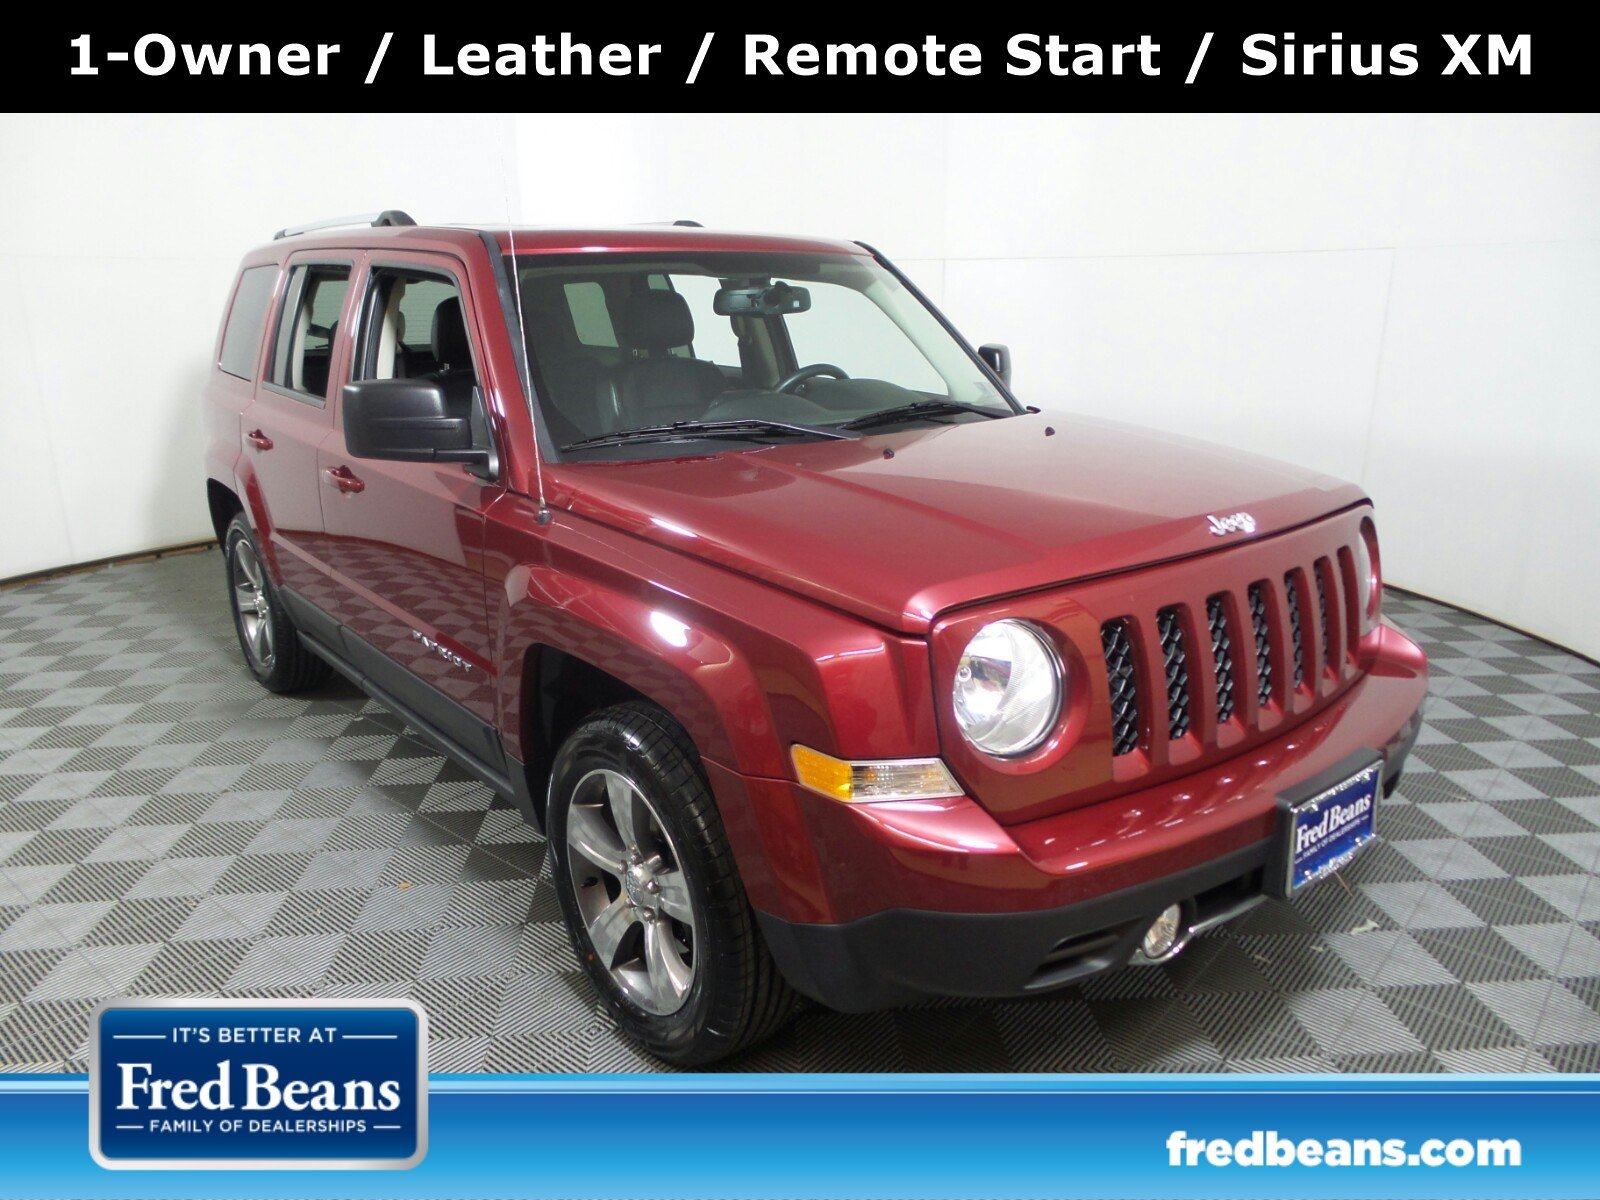 2016 Jeep Patriot Latitude FWD FWD  High Altitude Edition